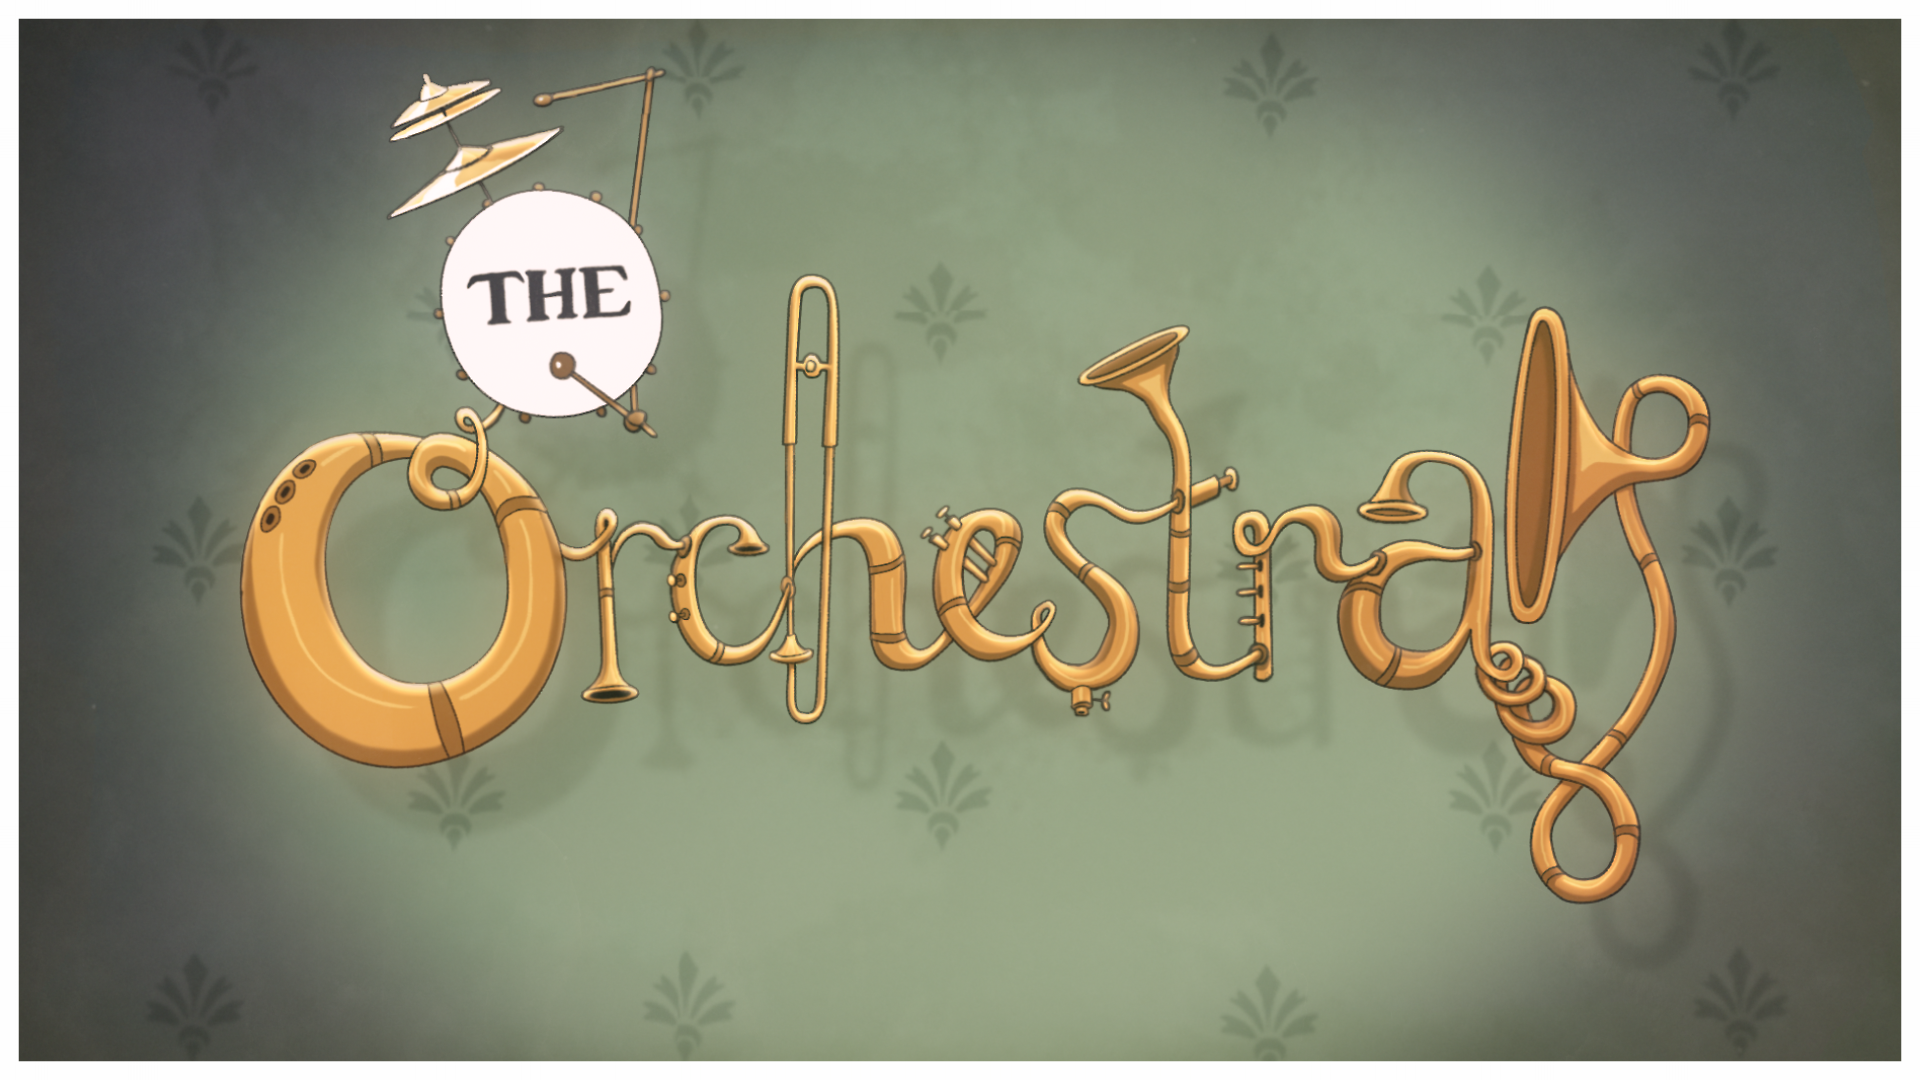 The Orchestra - Directed and Animated by Mikey Hill